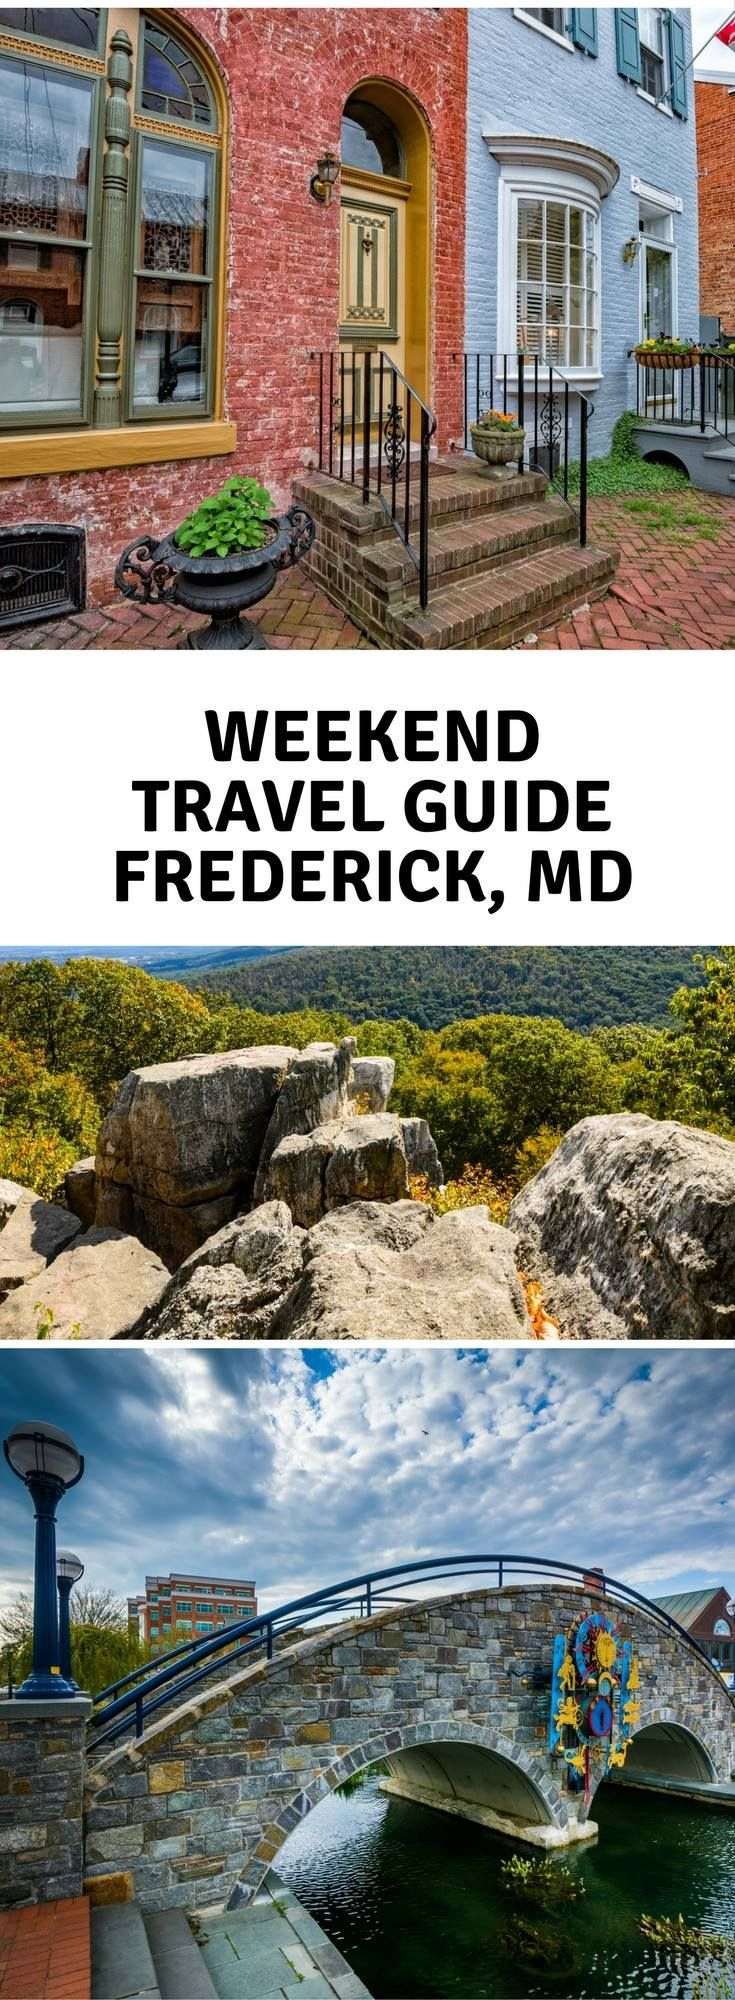 The best restaurants, hotels, and things to do in Frederick, Maryland via DopesontheRoad.com